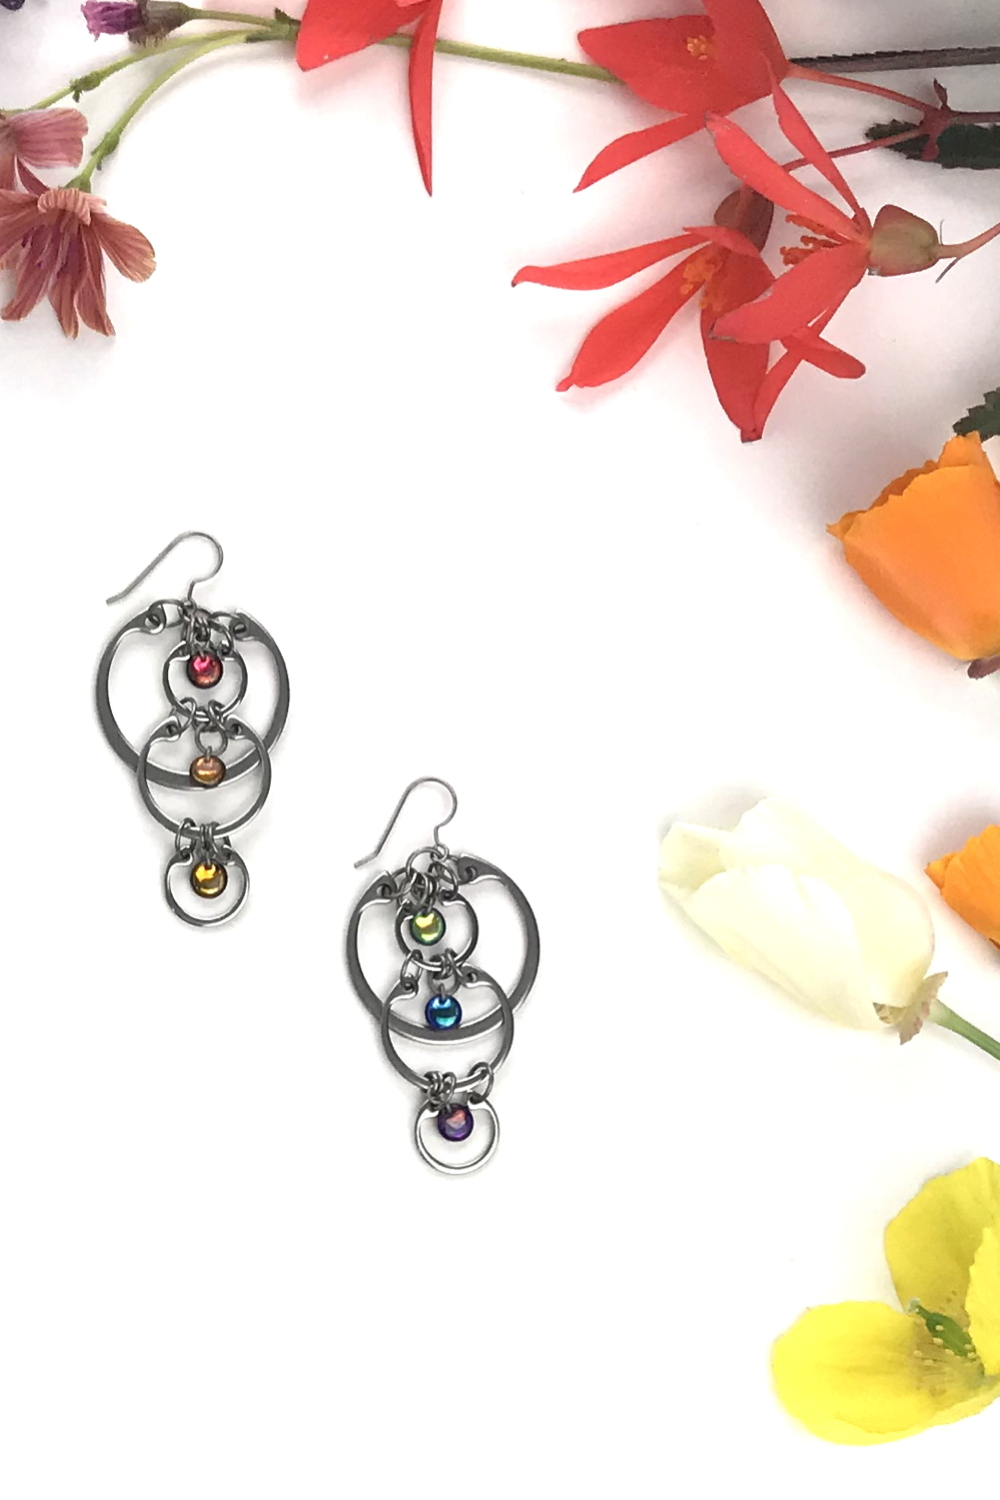 Wraptillion's modern Cascading Rainbows Earrings in a flatlay next to yellow Welsh poppies, cream and orange California poppies, red begonias, and coral lewisia flowers.